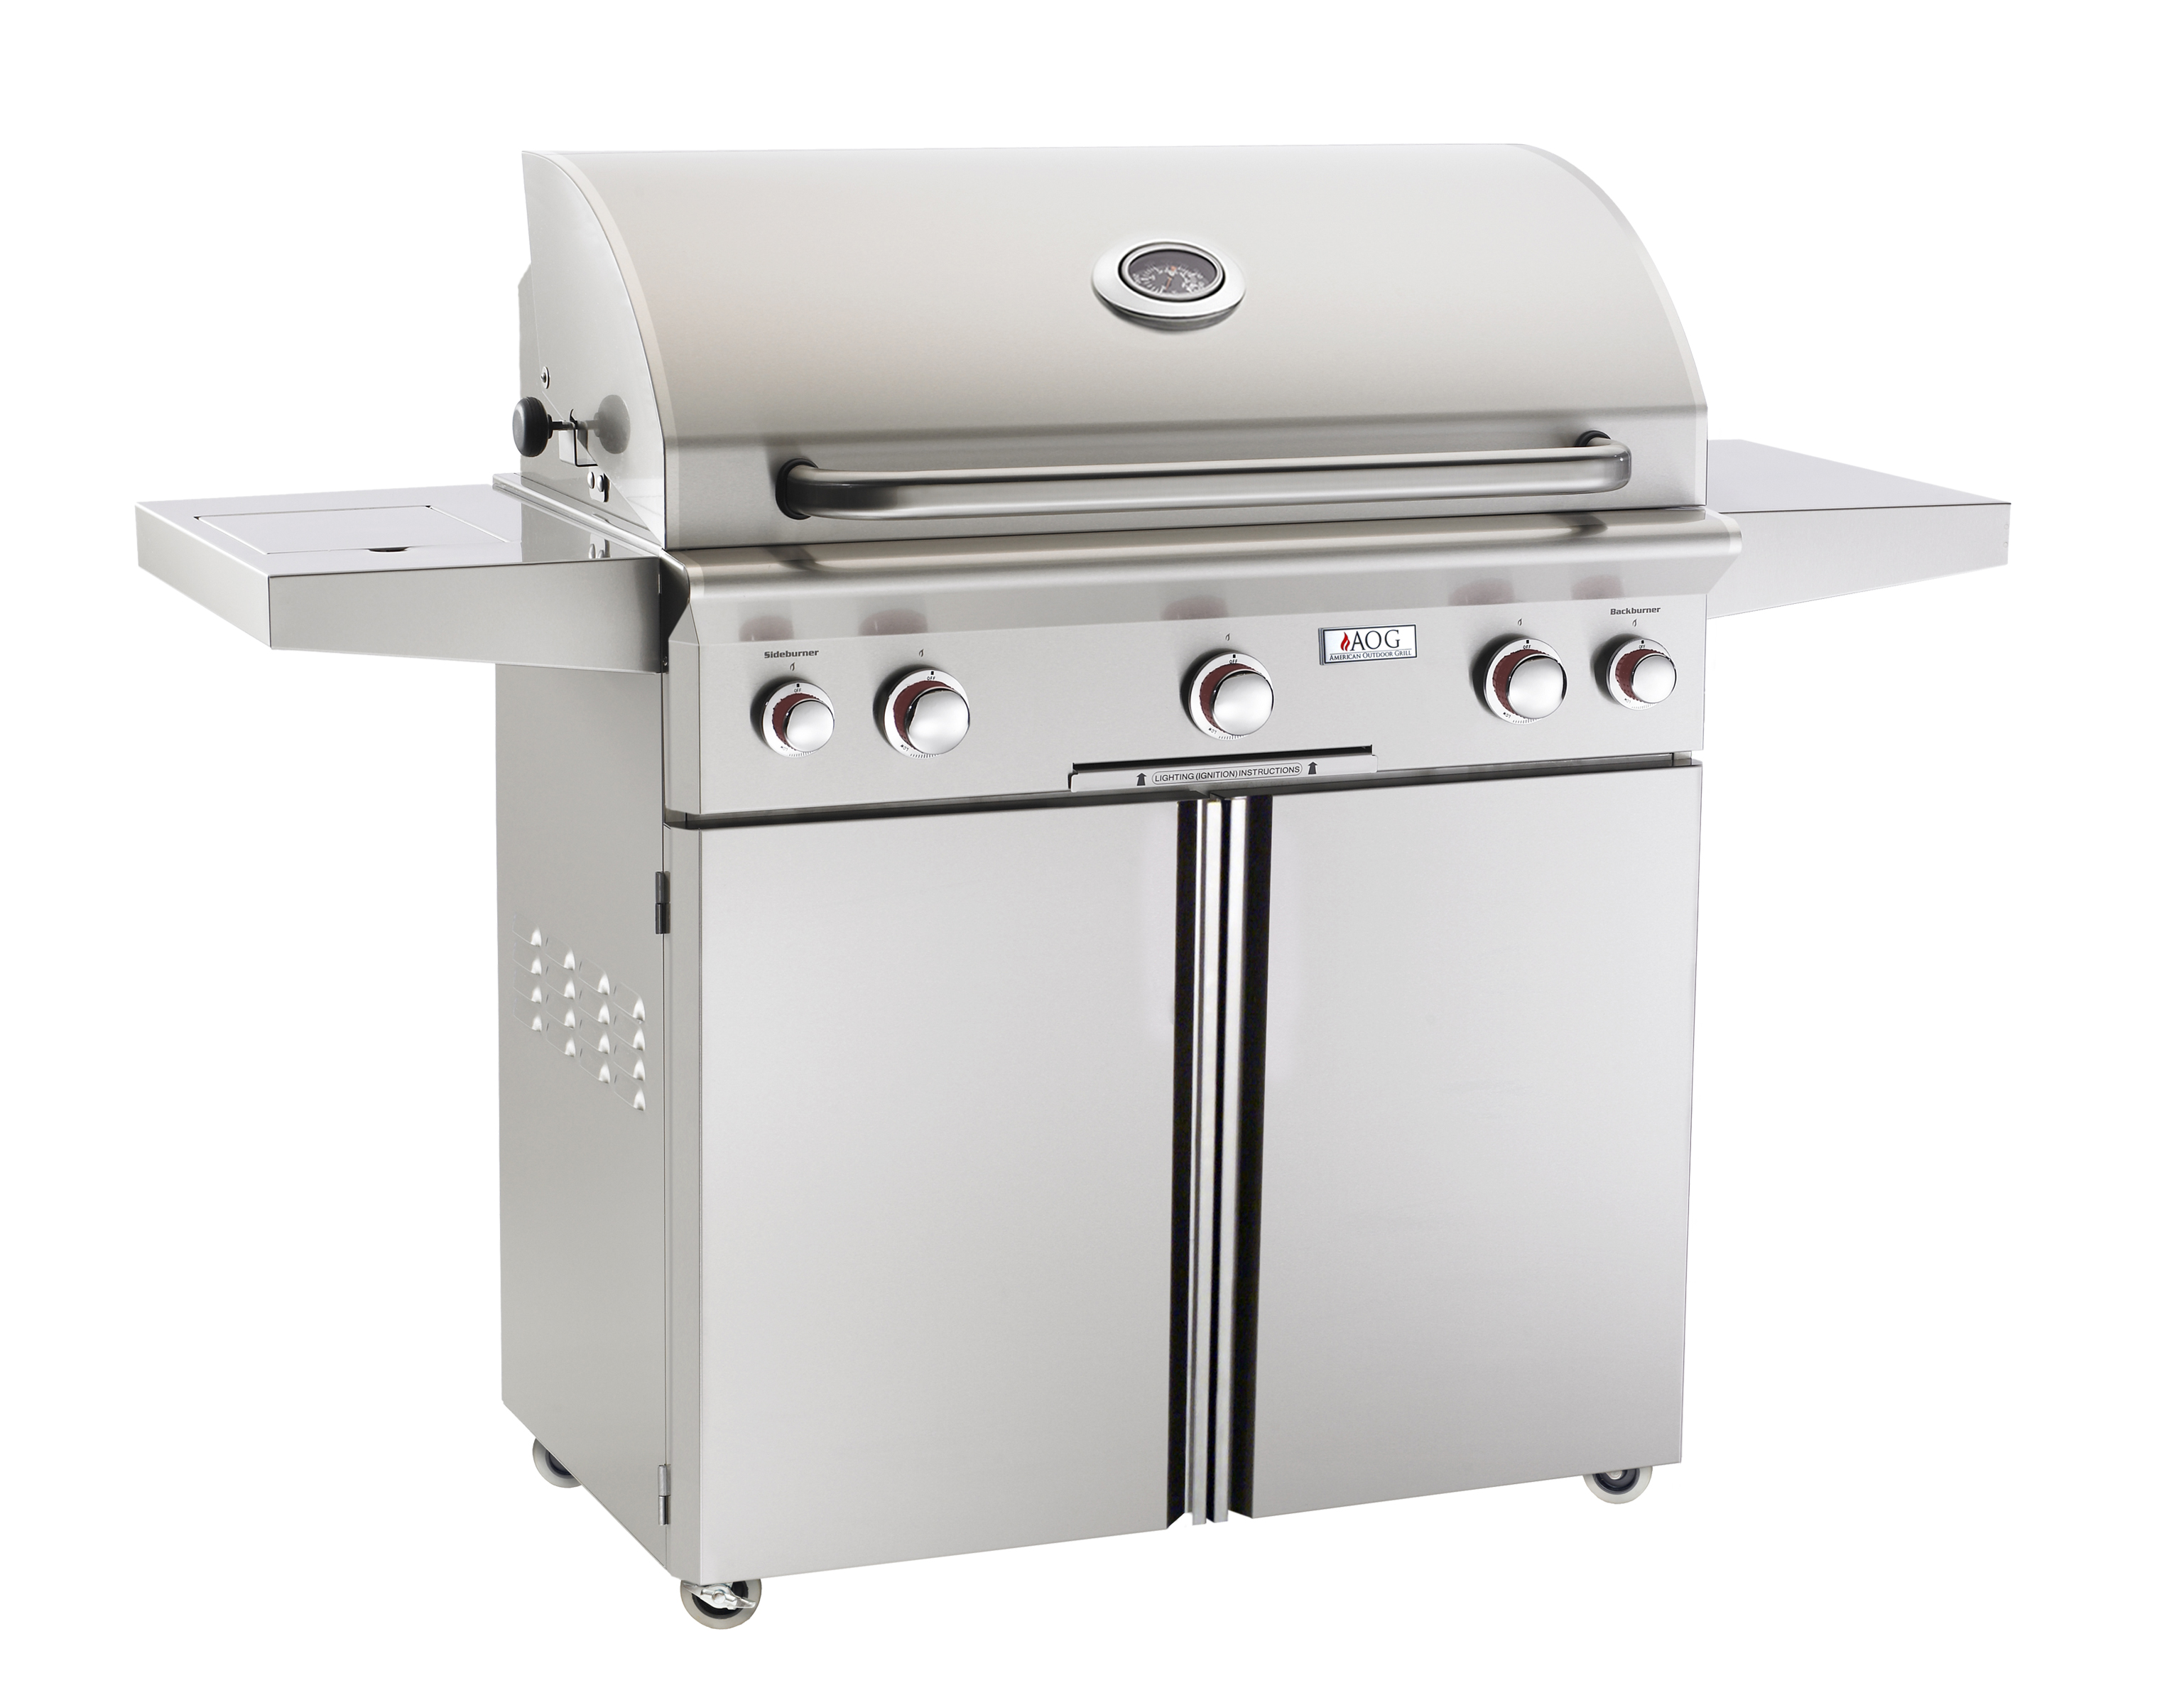 aog-36pct-36-t-series-portable-grill-closed.jpg